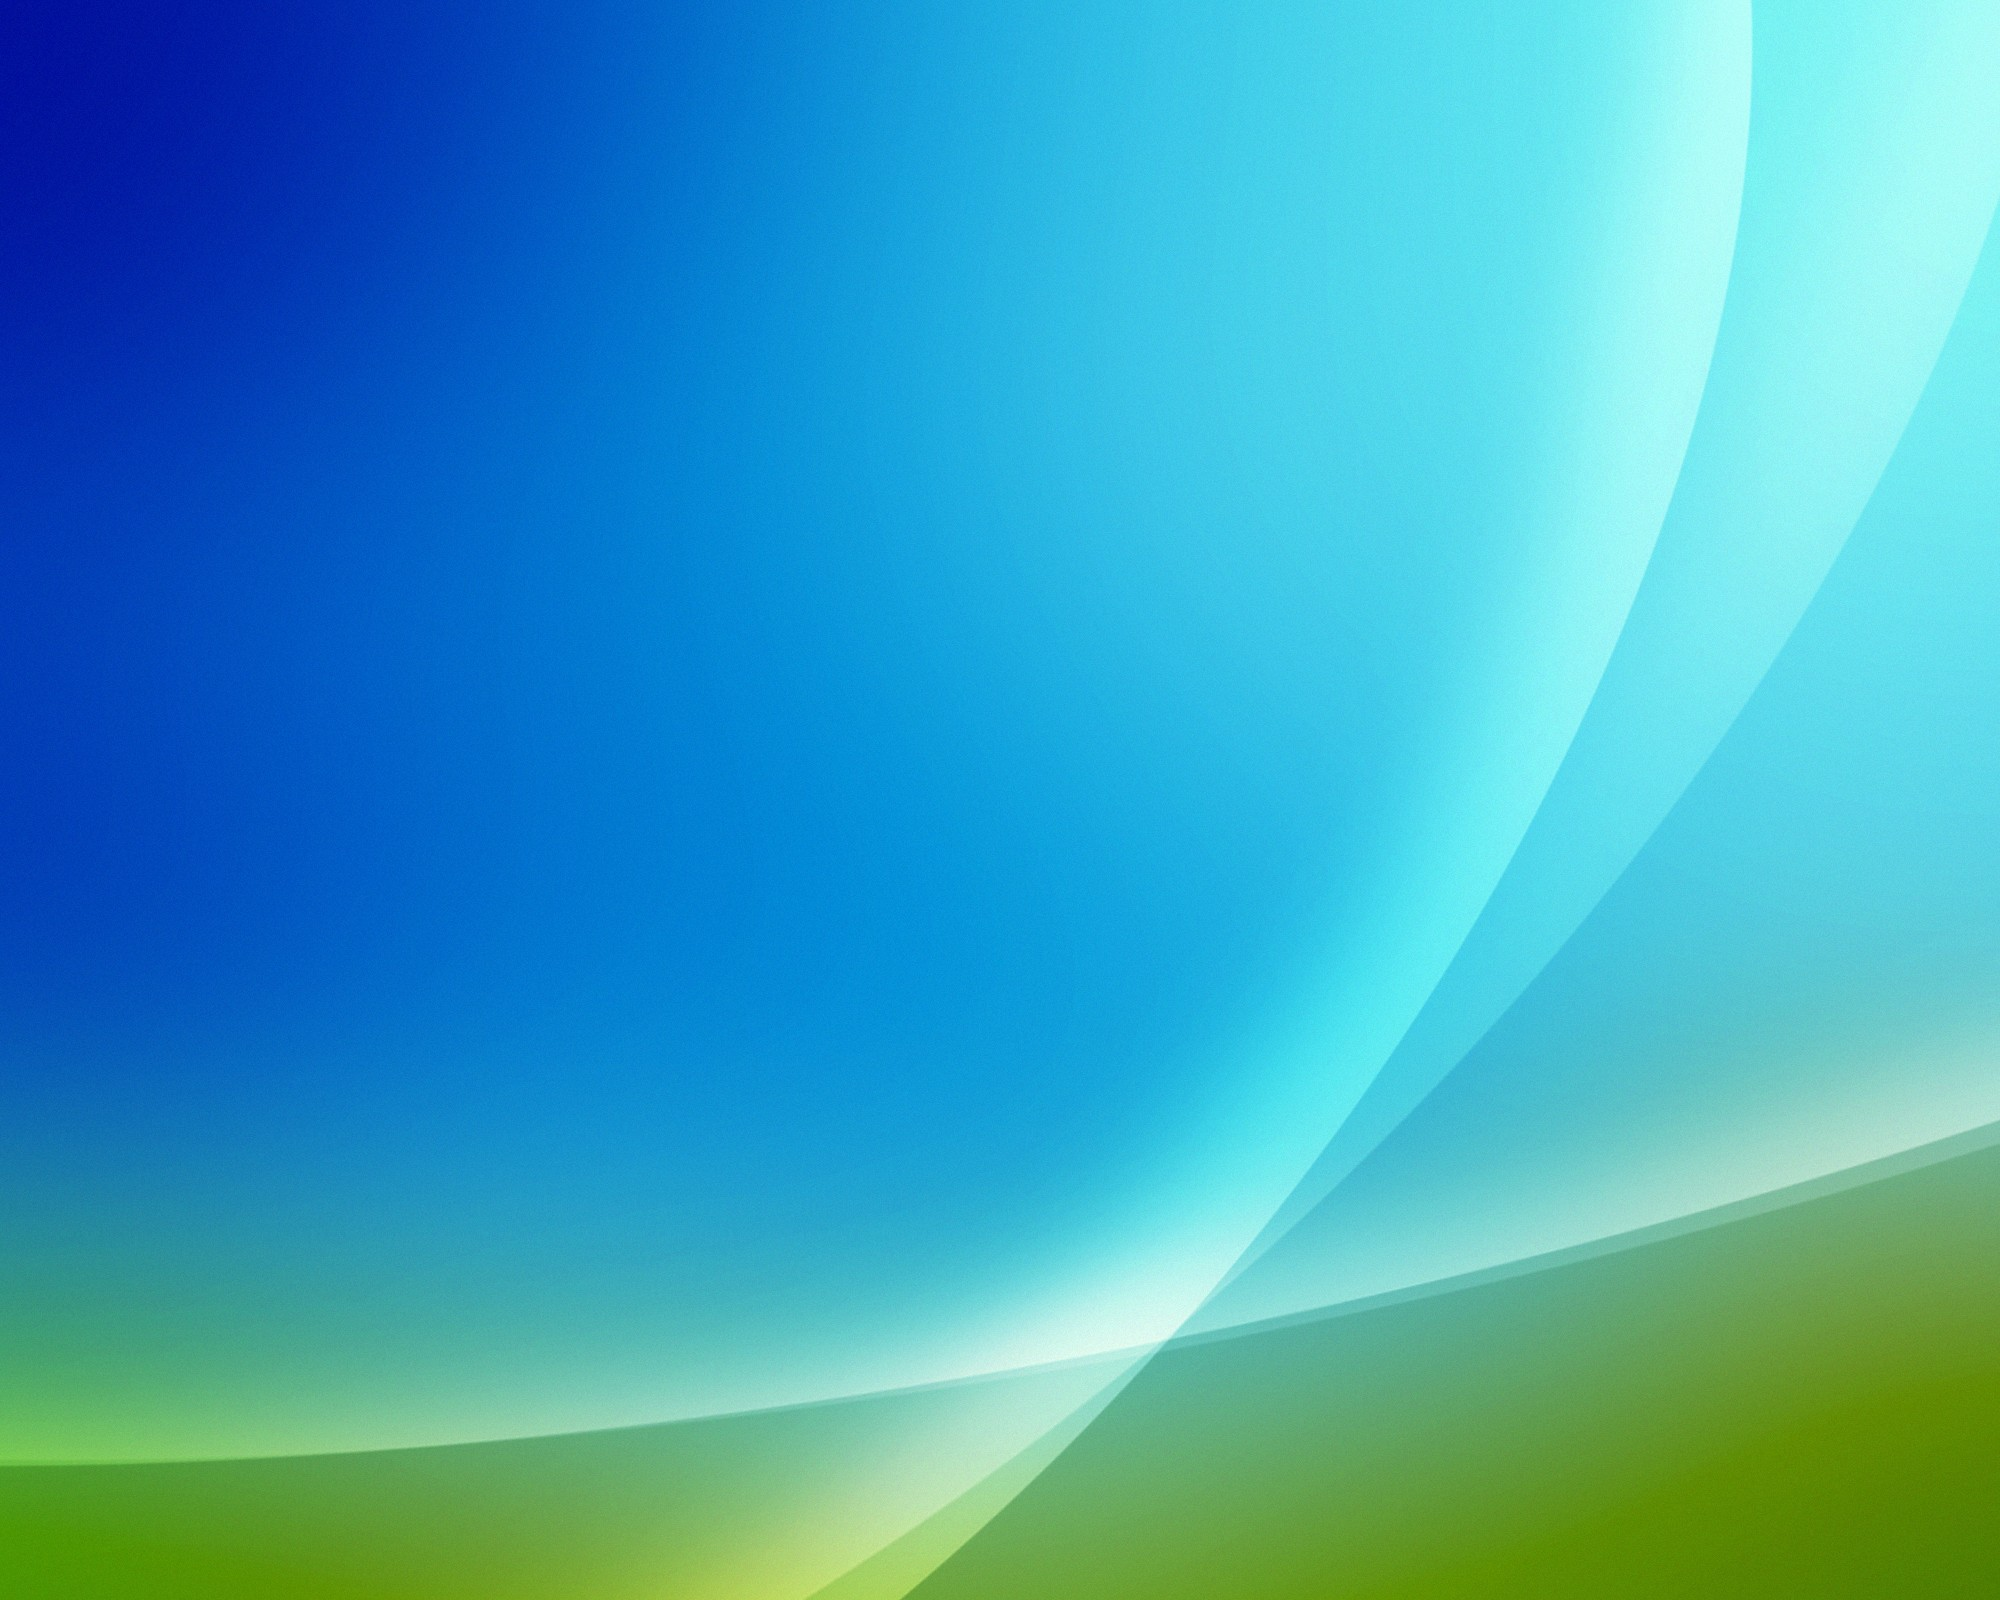 Blue Green Background ·① Download Free Beautiful HD Wallpapers For Desktop, Mobile, Laptop In